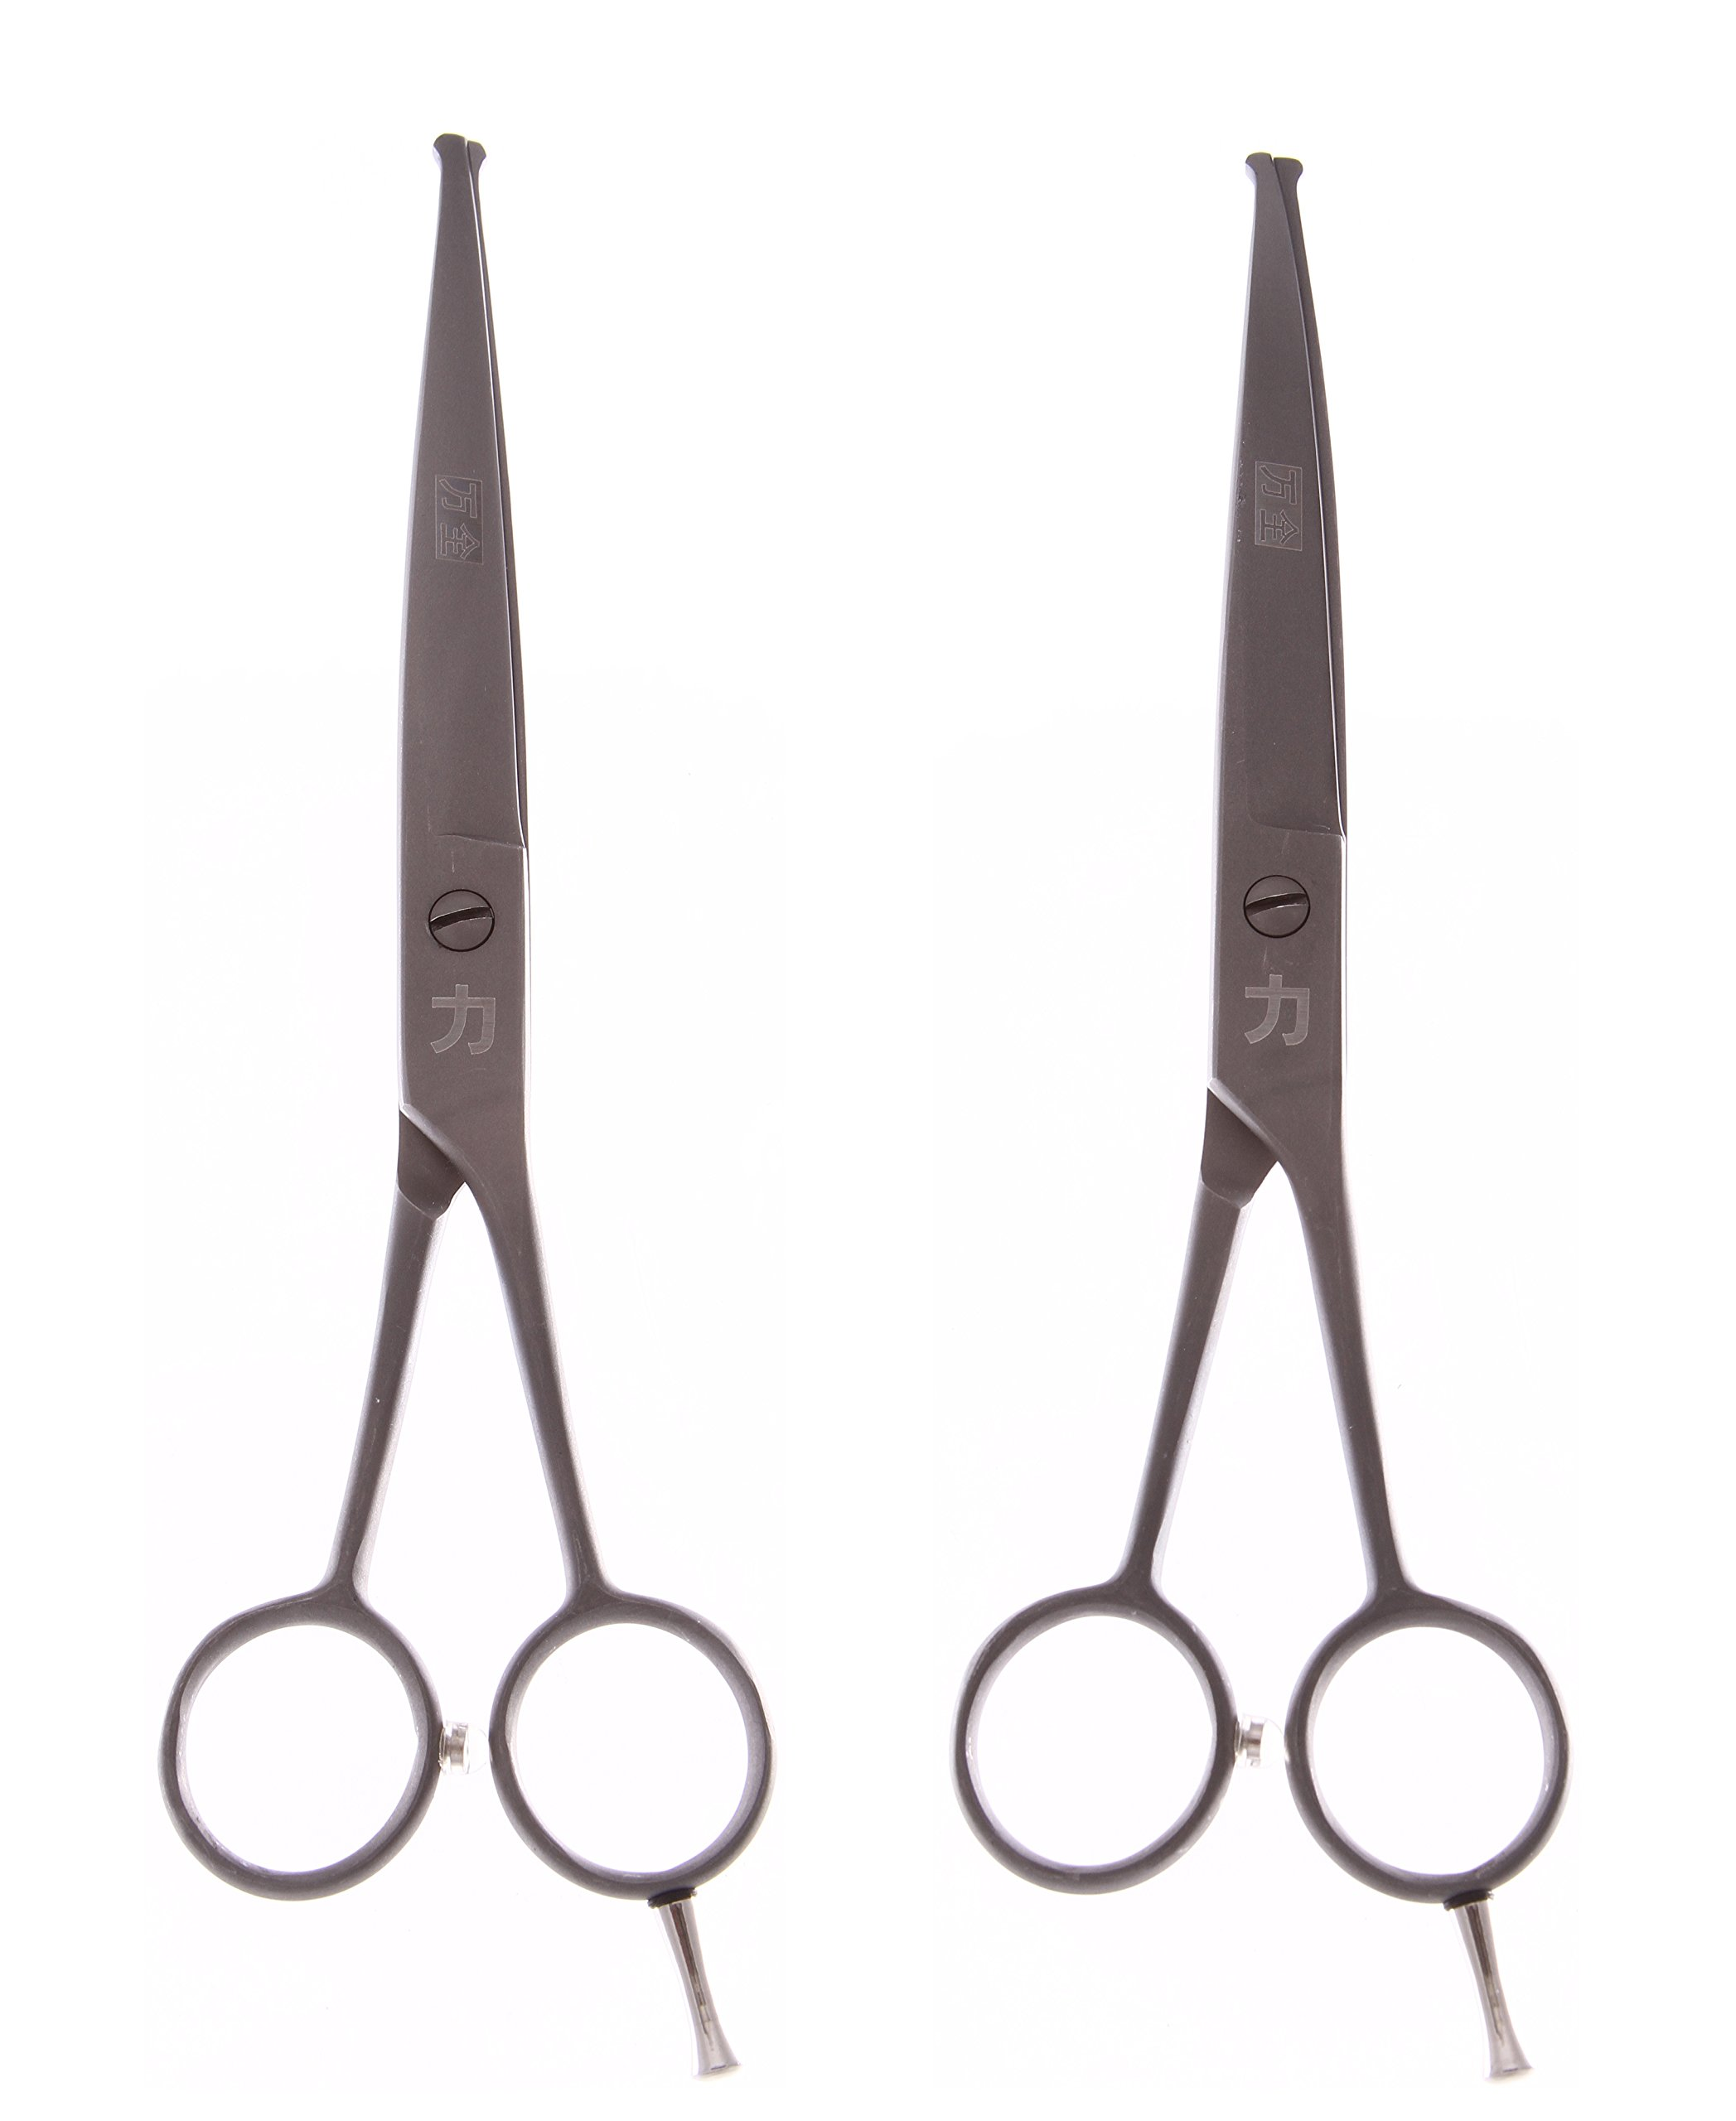 ShearsDirect STR and CRV Ball Tip Shears (Set of 2), Matted Gun Metal, 6.5''